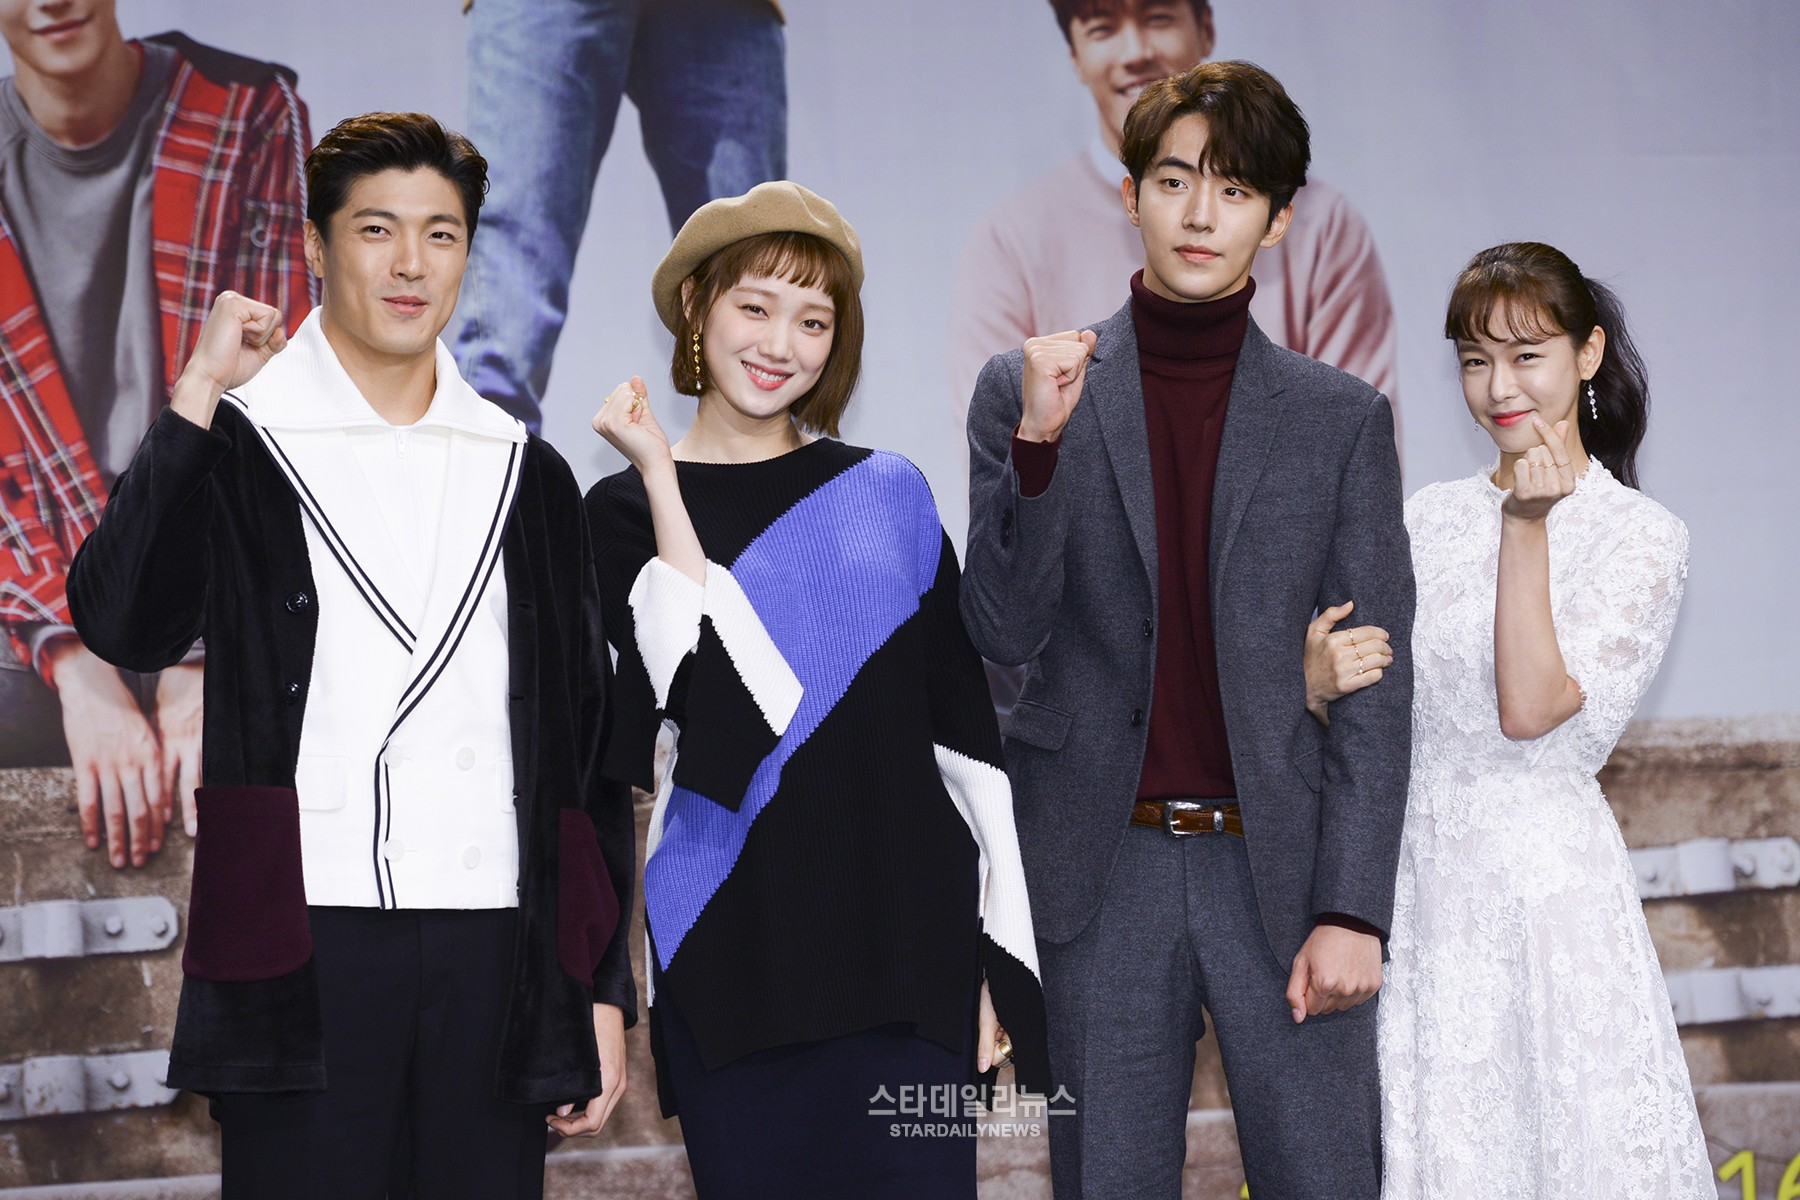 https://0.soompi.io/wp-content/uploads/2016/11/14222715/Weightlifting-Fairy-Kim-Bok-Joo-cast.jpg